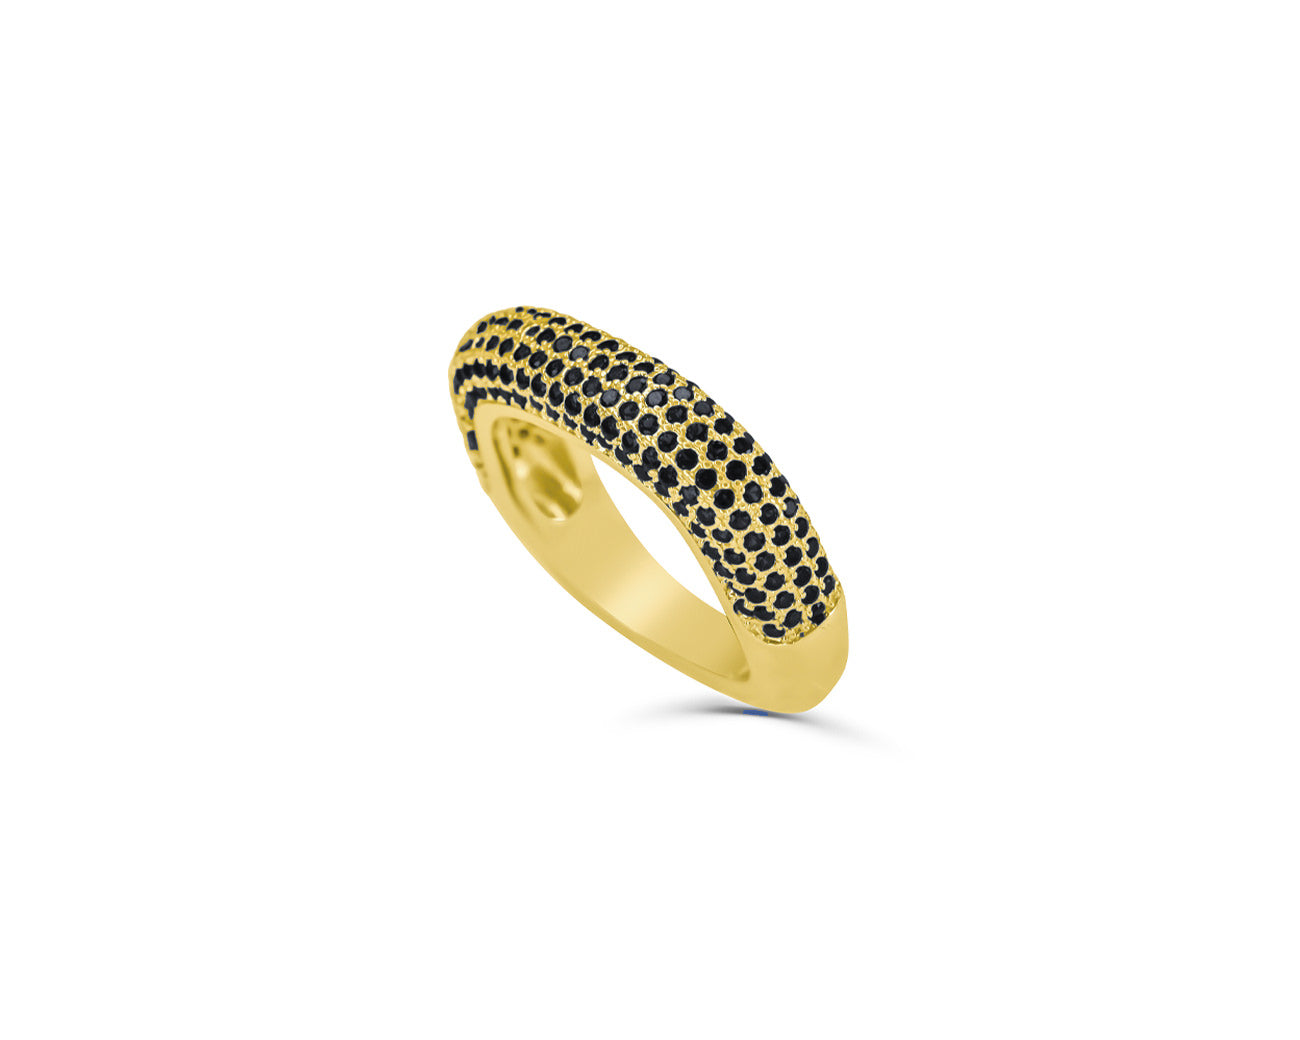 FAX Jewelry | Anything But Square 18K Gold and Black Stones Stack Ring